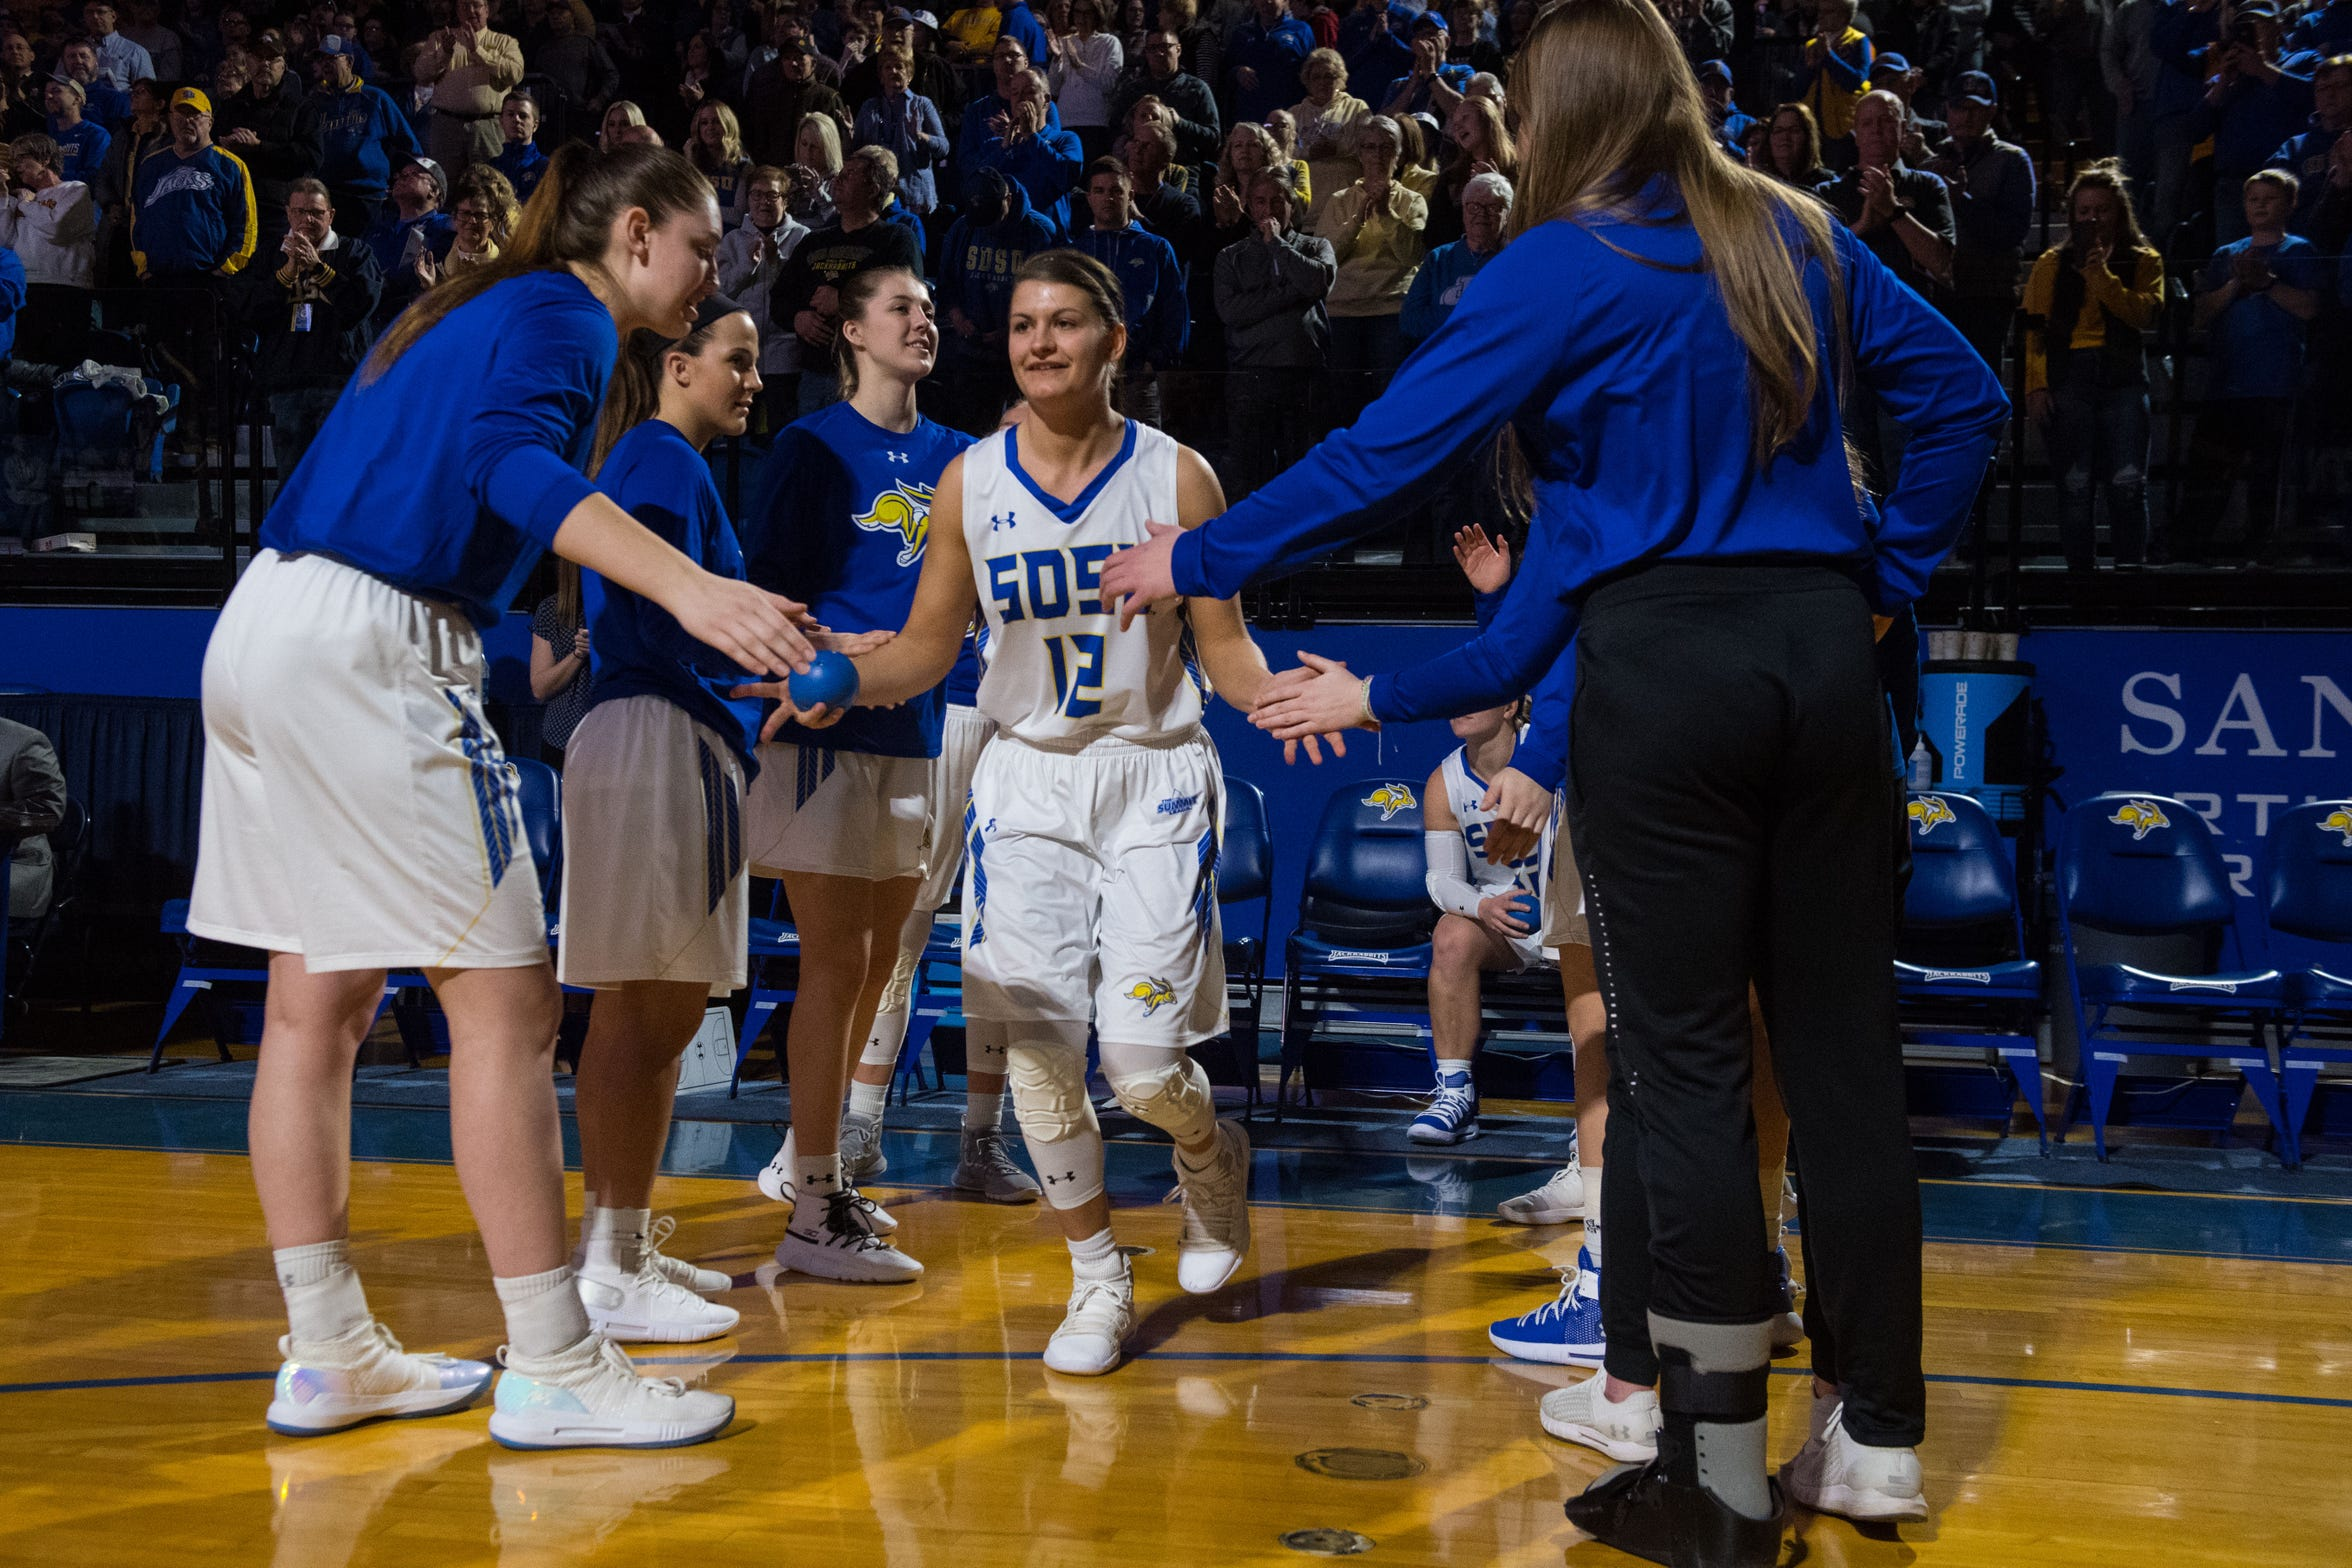 SDSU's Macy Miller (12) gets introduced by the crowd before a game against Western Illinois, Saturday, March 2, 2019 in Brookings, S.D.